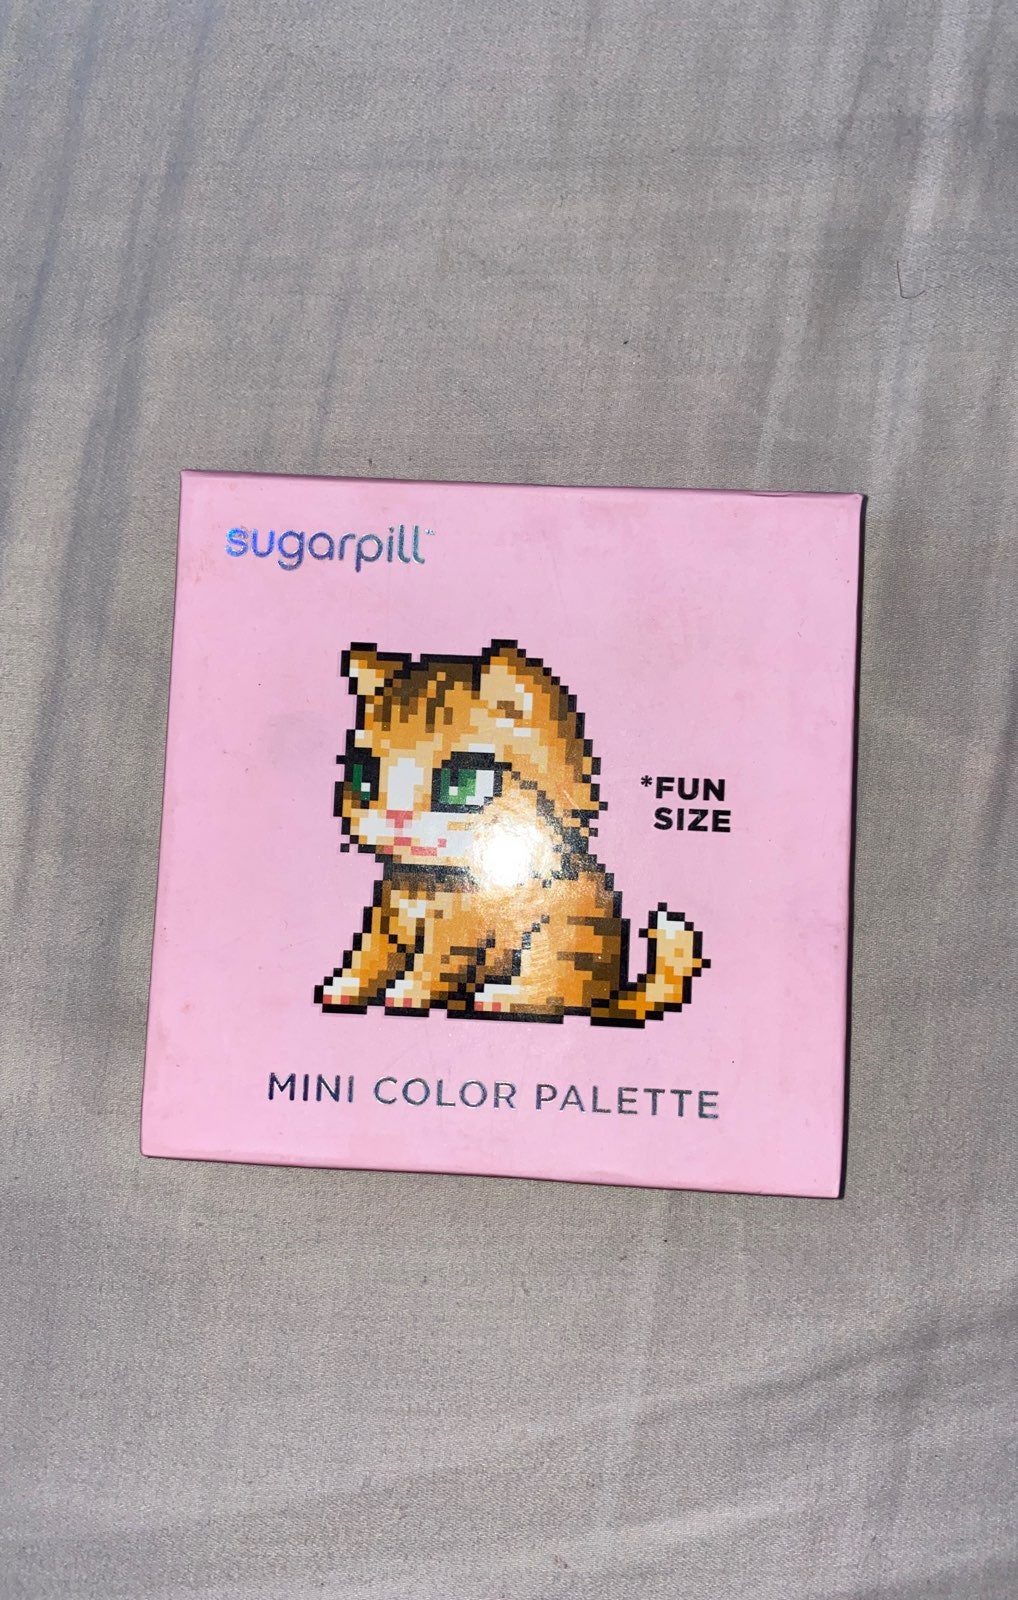 Sugar pill mini color palette